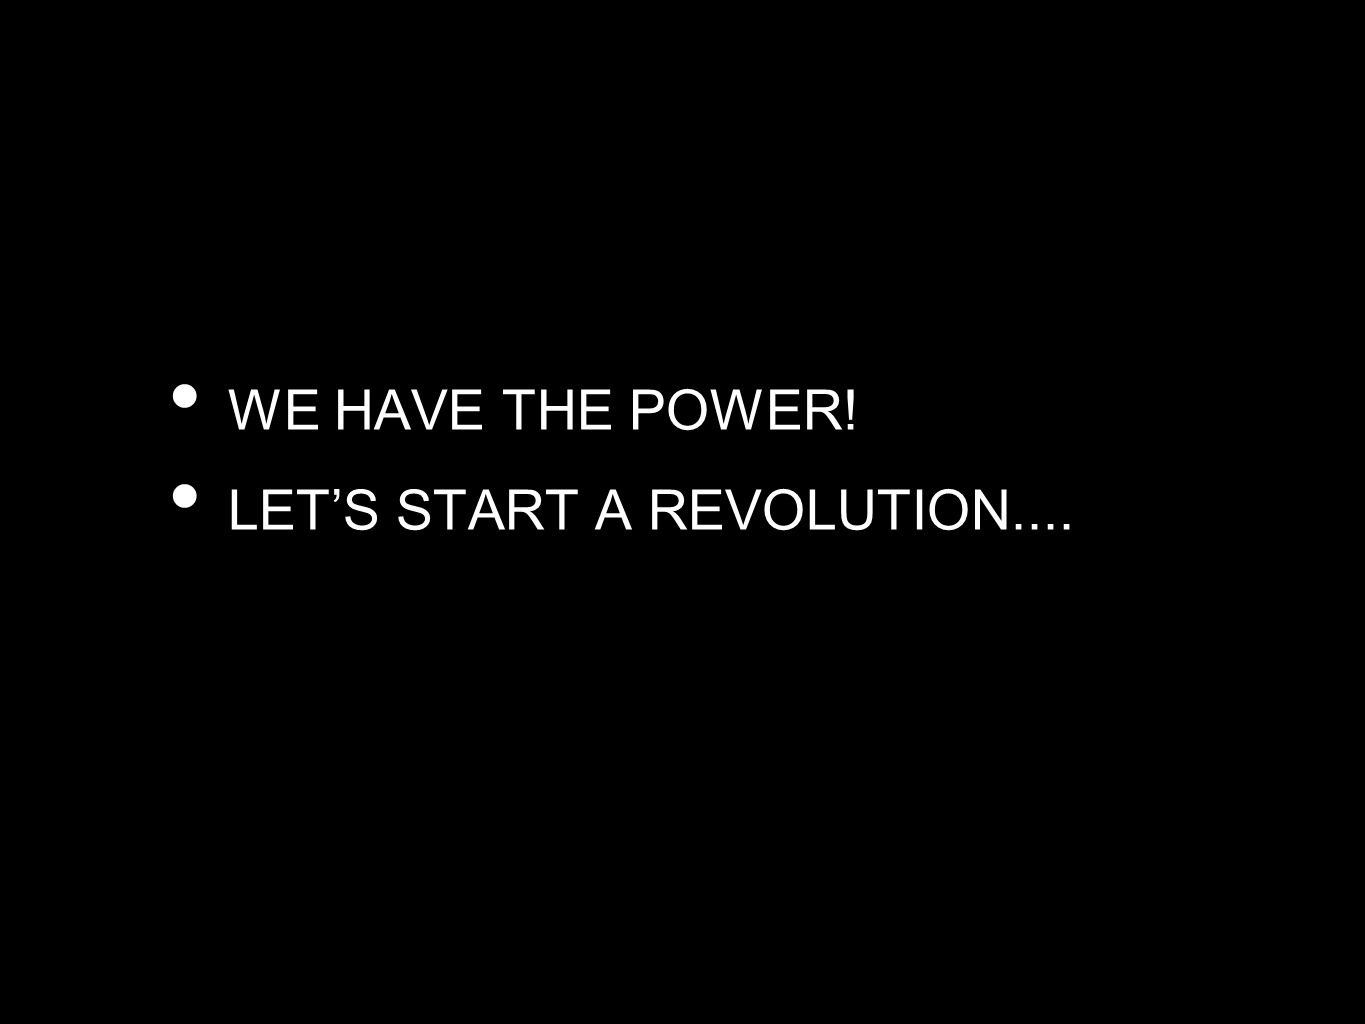 WE HAVE THE POWER! LET'S START A REVOLUTION....